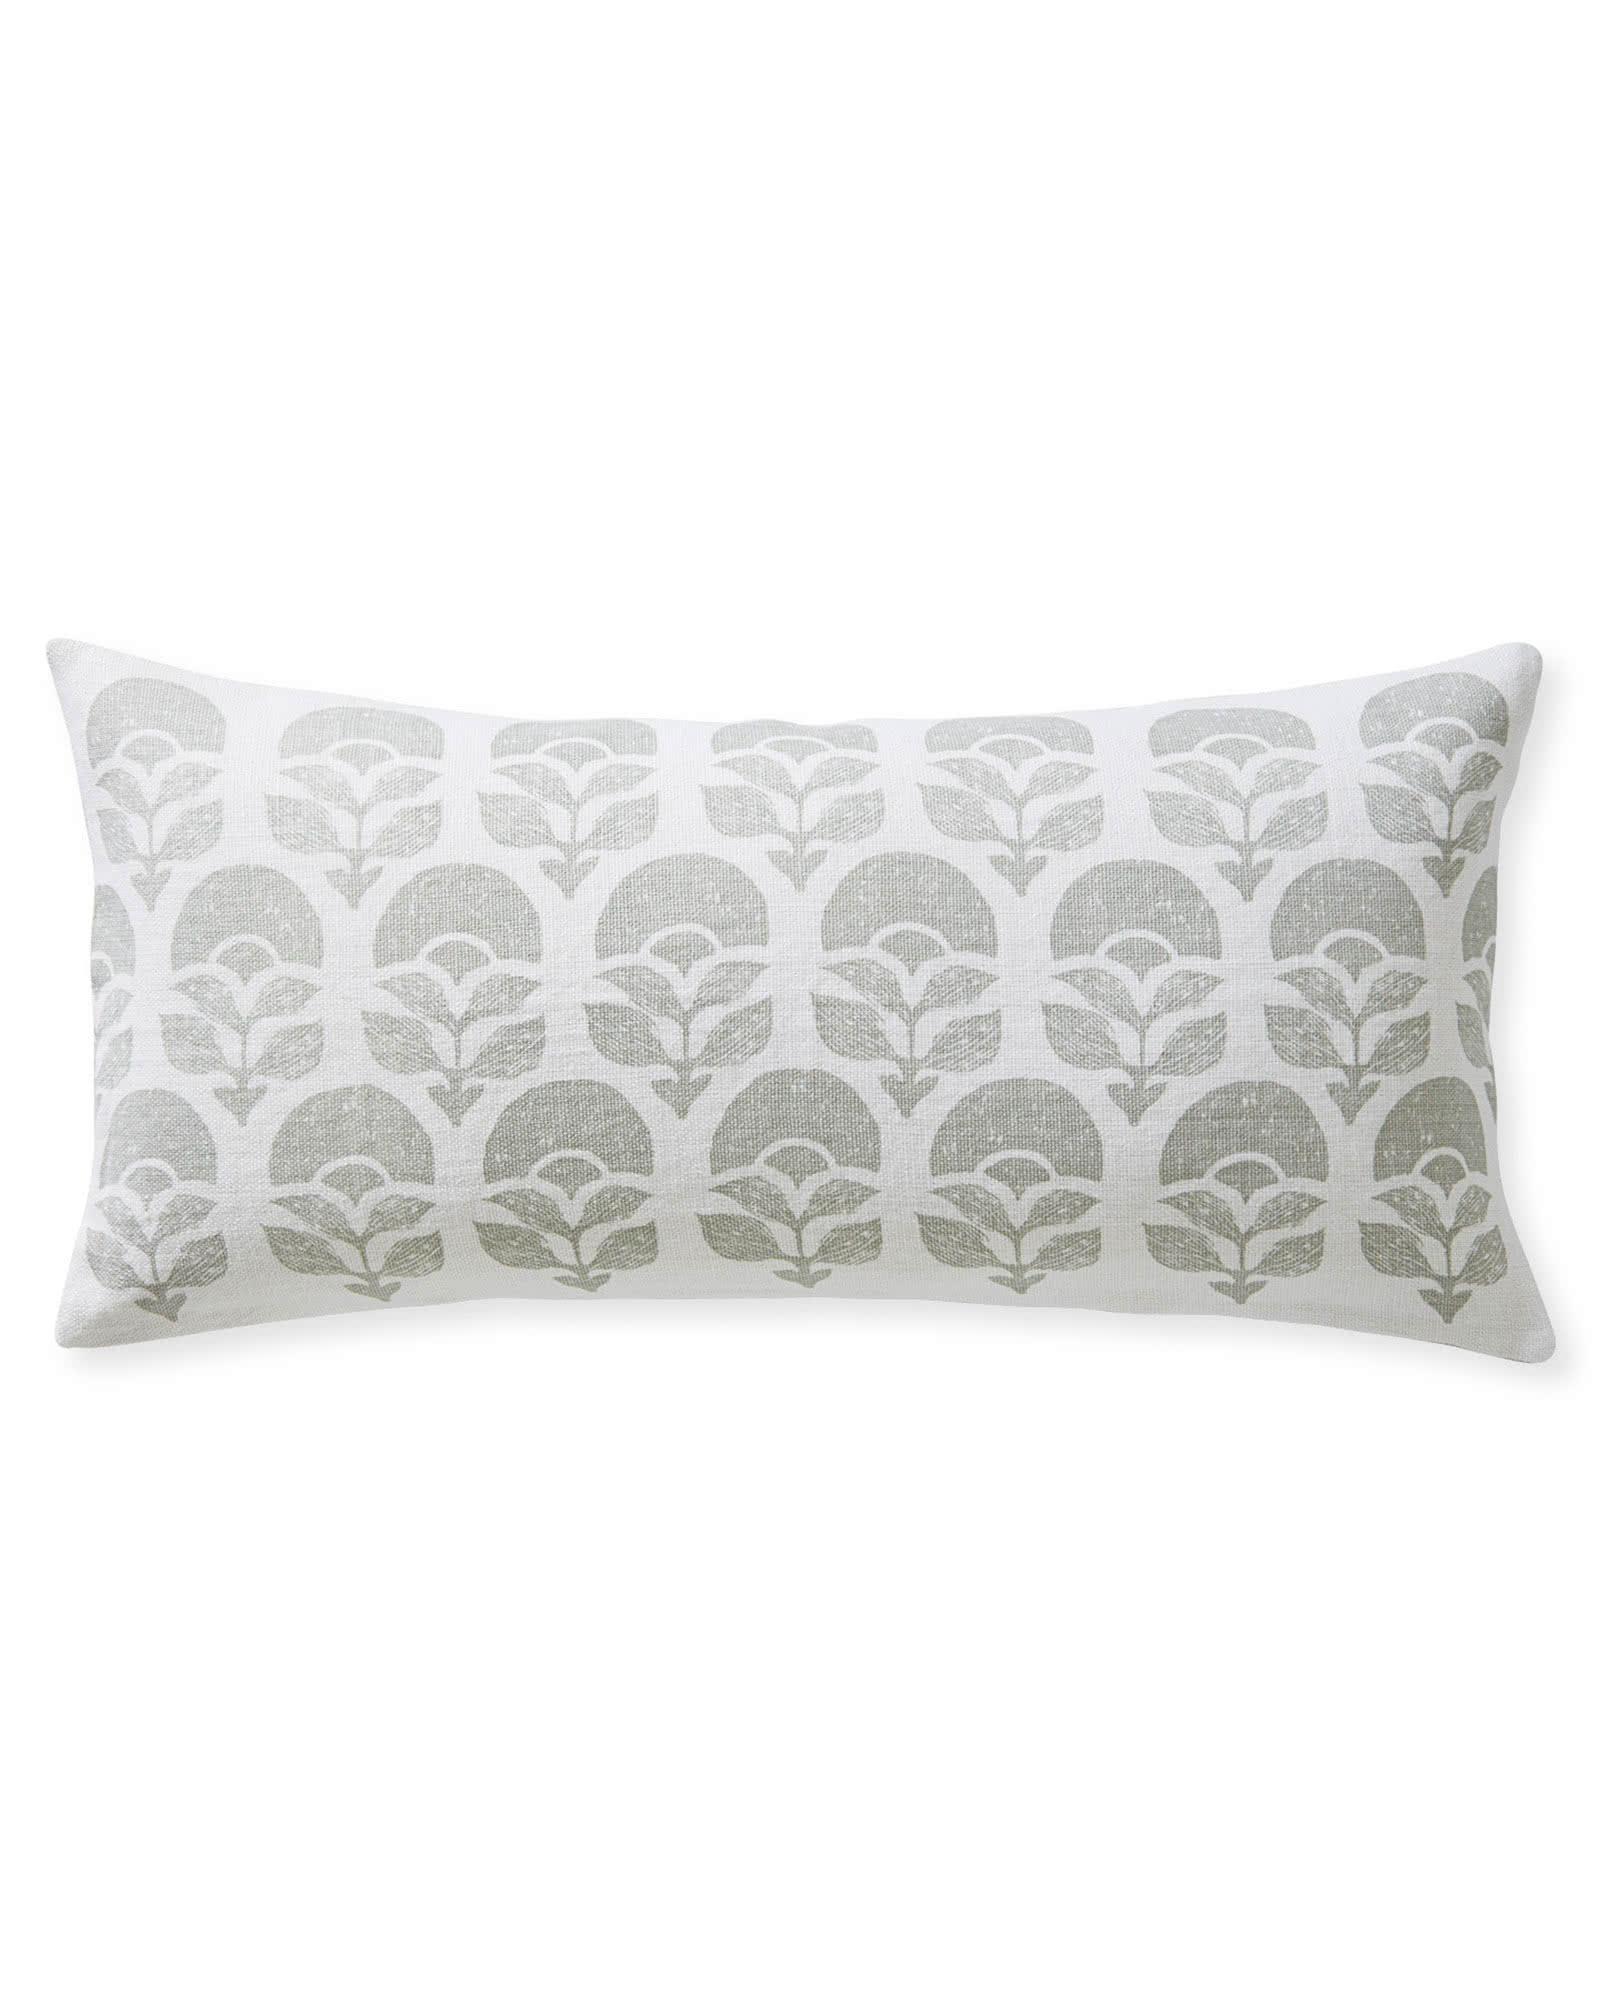 Larkspur Printed Pillow Cover, Fog